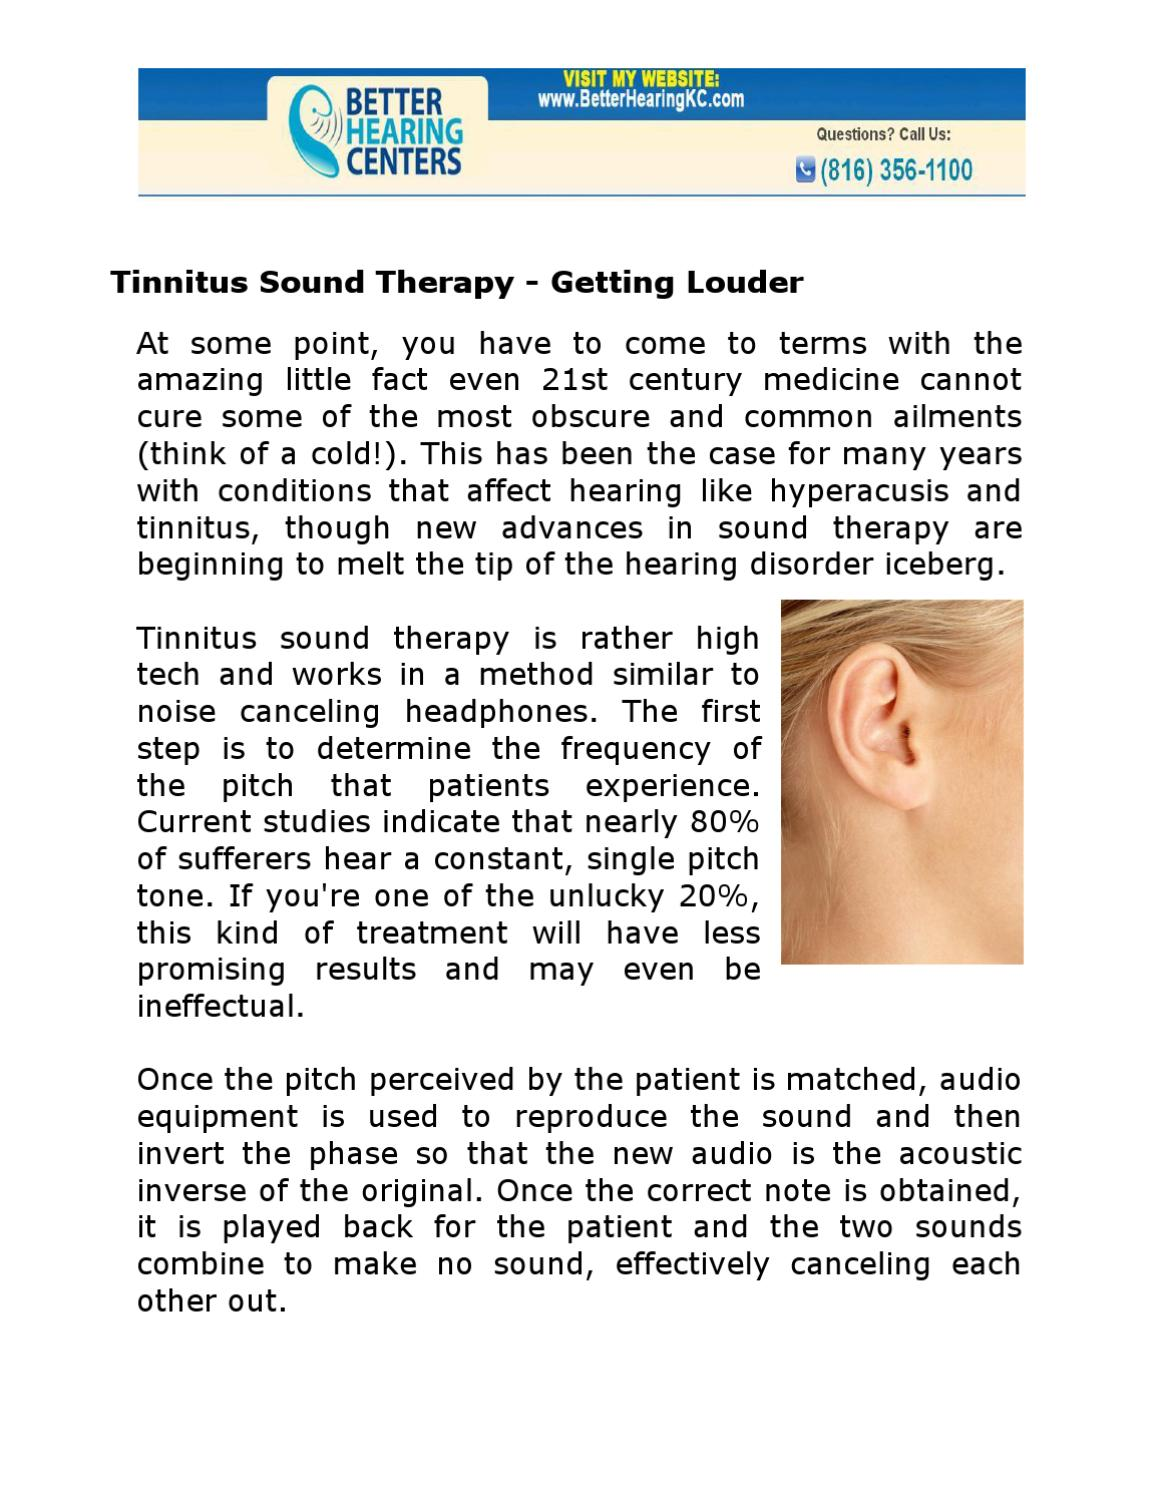 Tinnitus Sound Therapy - Getting Louder by Better Hearing Centers